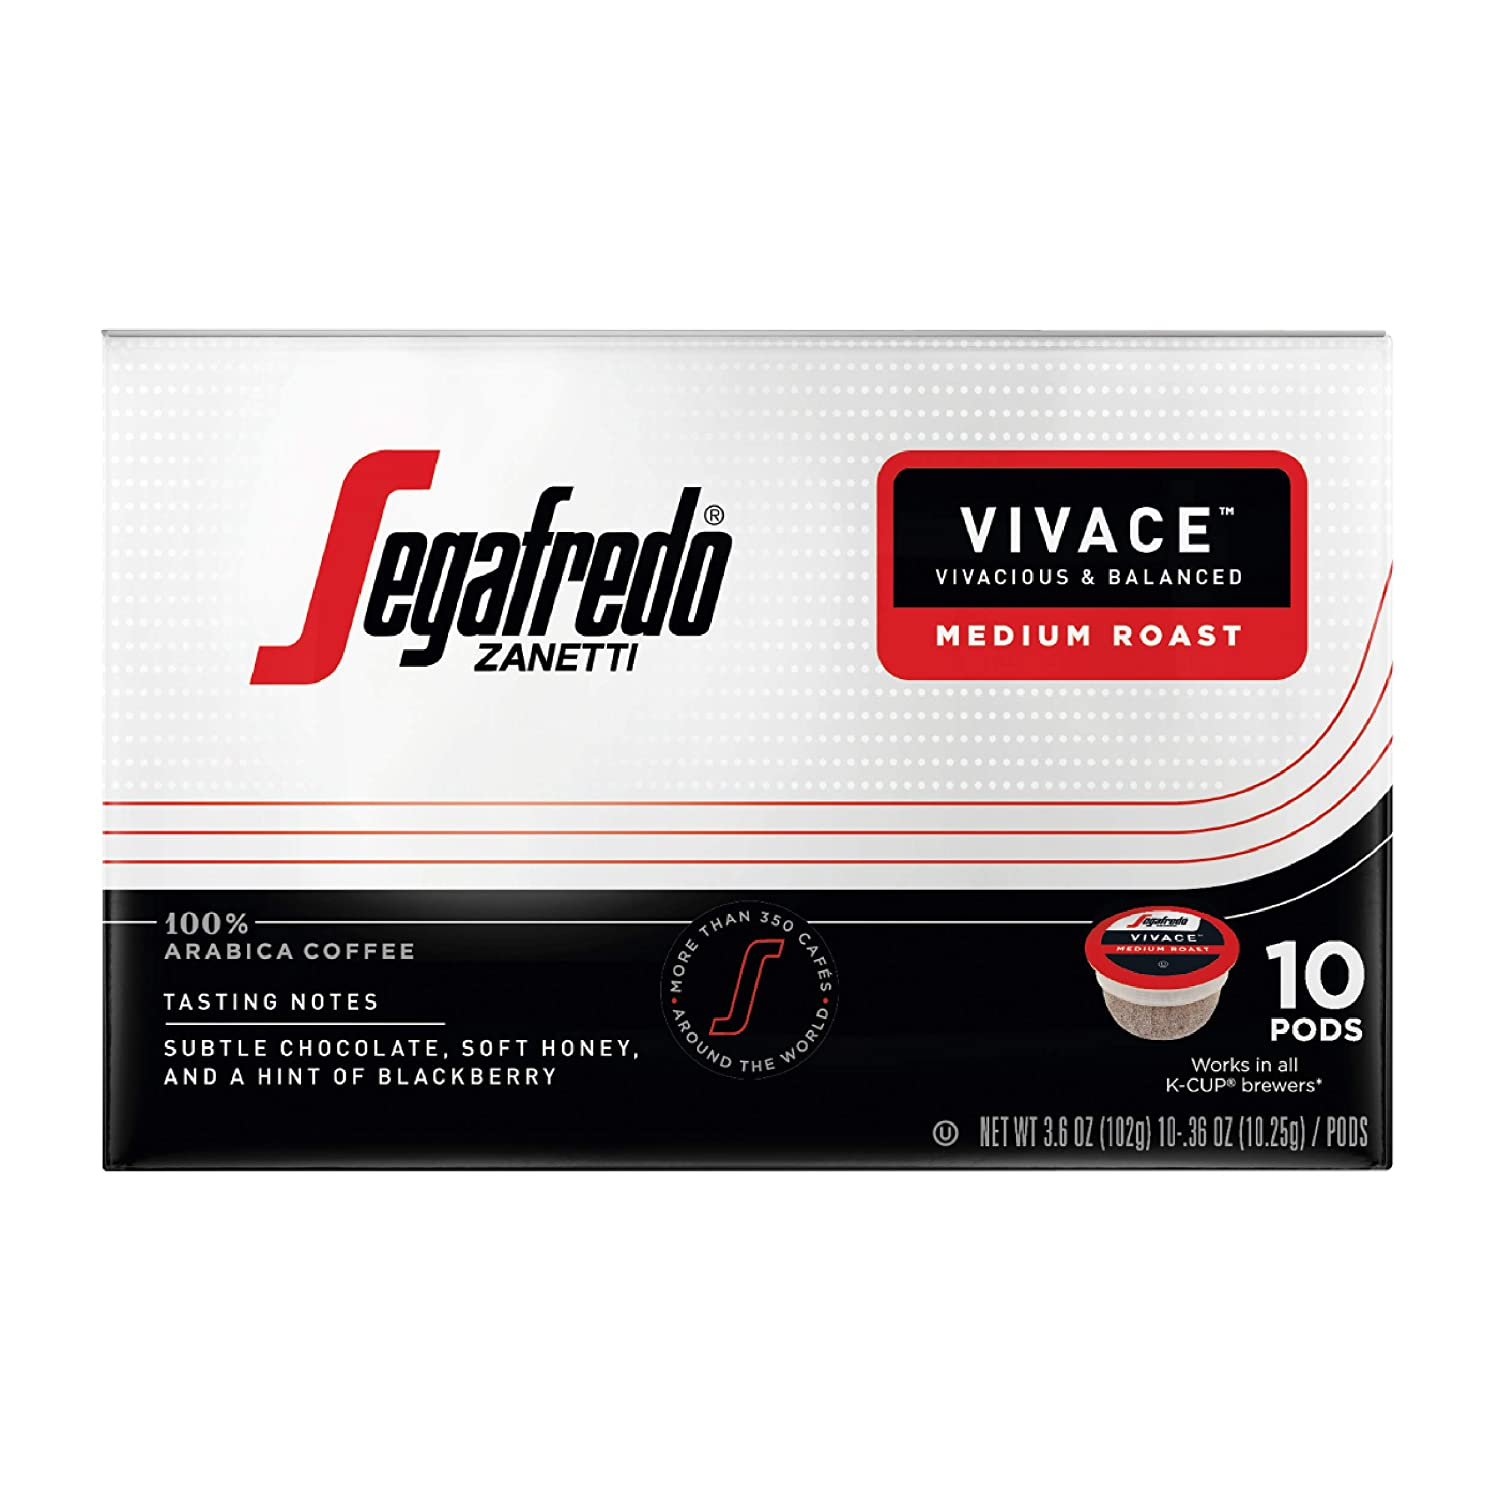 Segafredo Zanetti Single Serve Coffee Pods Vivace Medium Roast 10 Count Pack Of 6 Easy To Brew 100 Arabica Coffee Pods World Class Coffee Experience Works With All K Cup Brewers